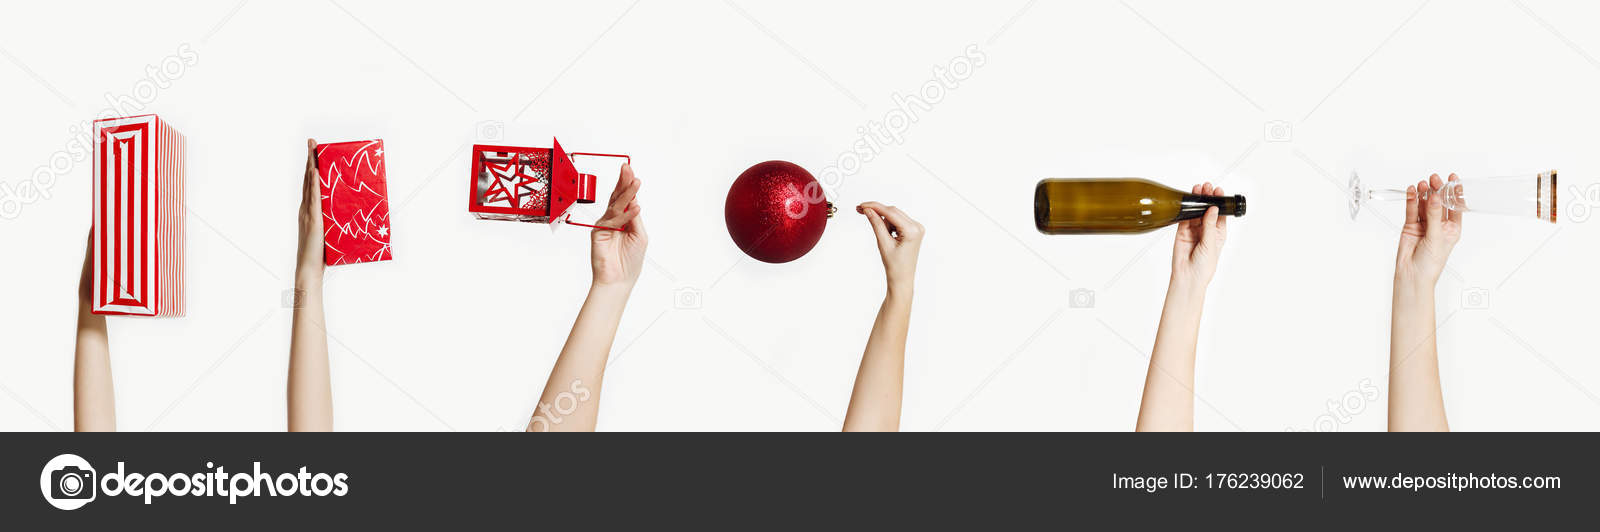 489b95c6a59d Set of hands holding Christmas things isolated on a white background. Wine  glass, champagne bottle, big red toy ball for tree, gift box, lantern with  candle ...